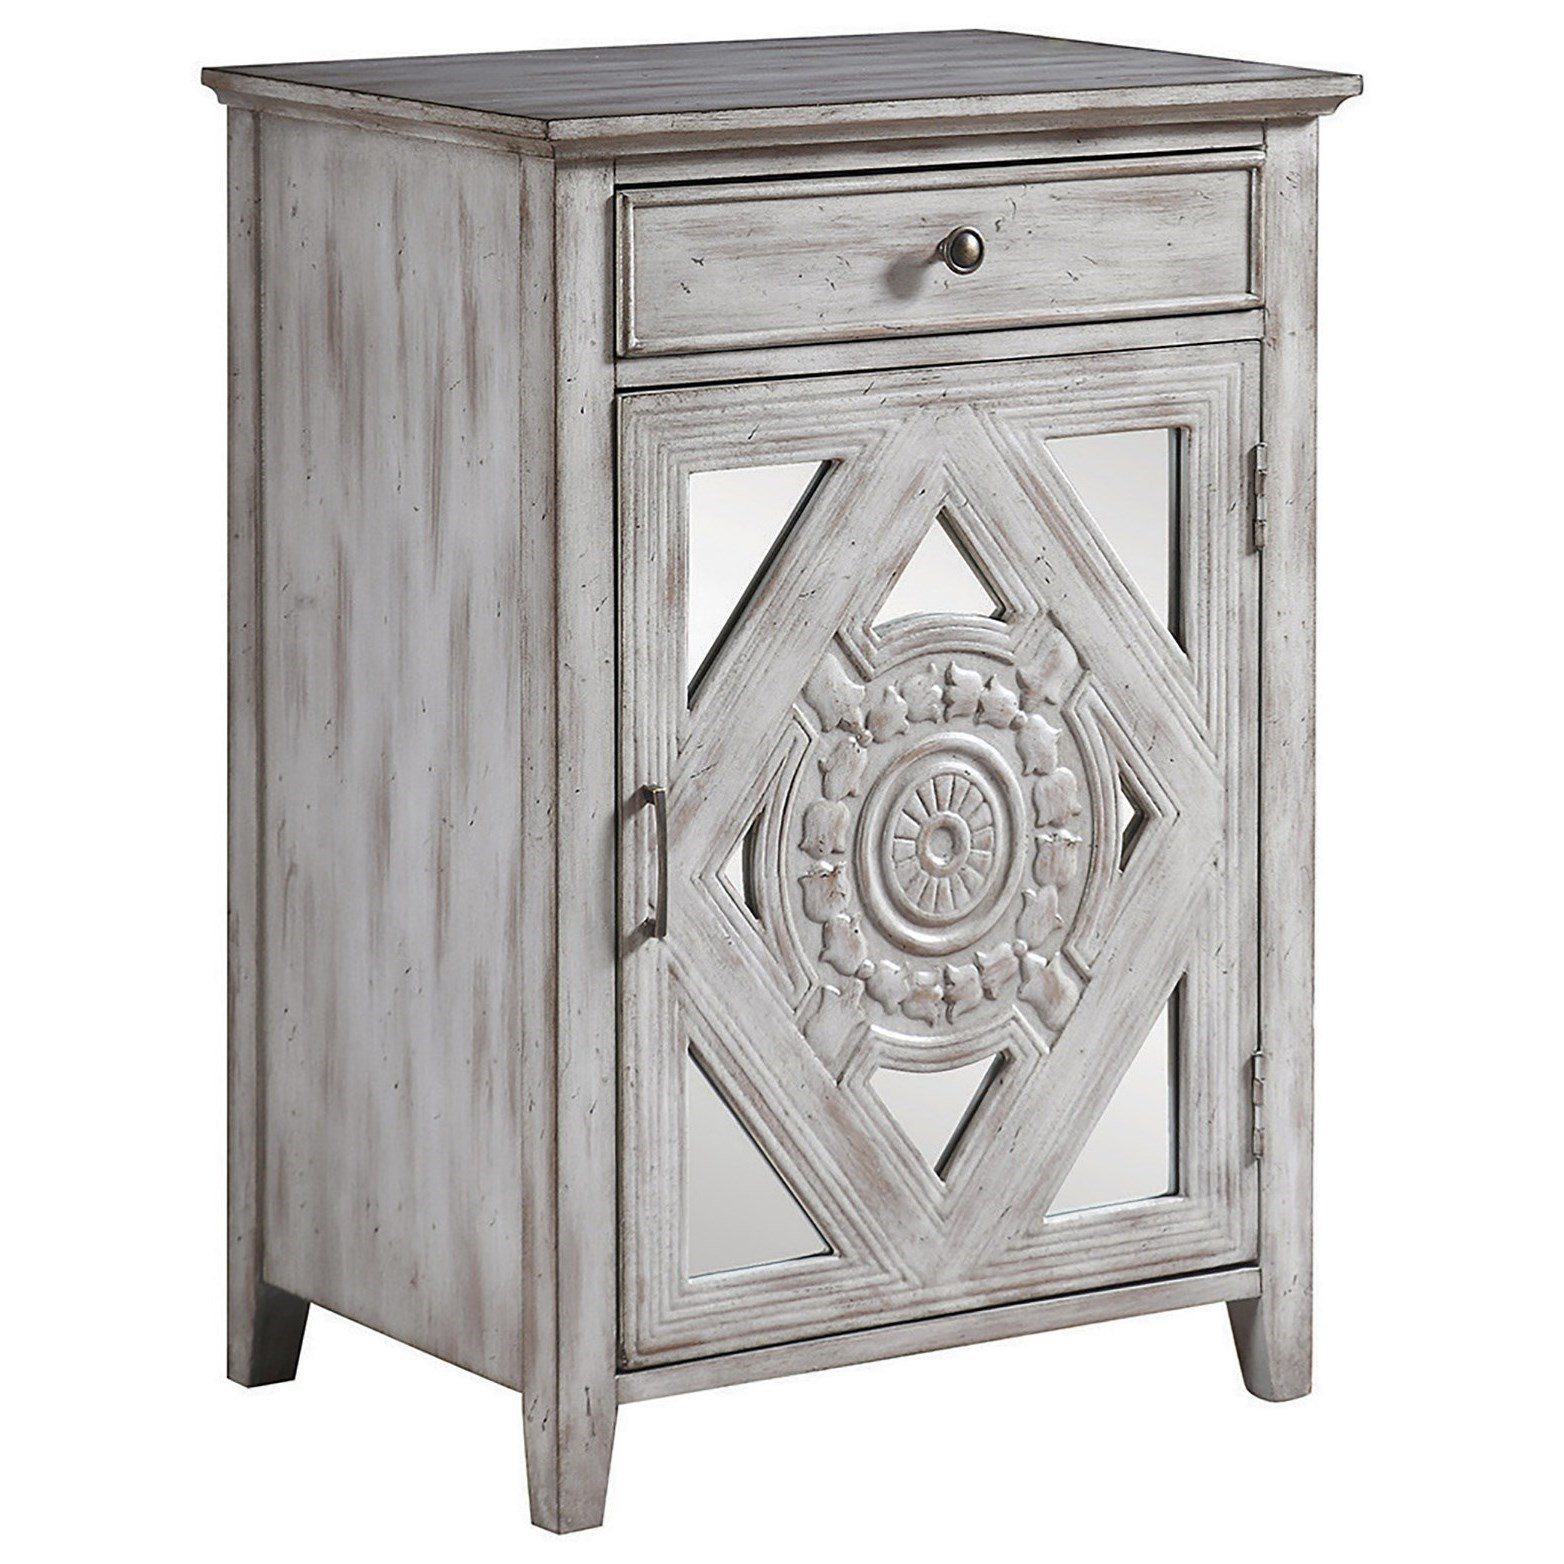 Coaster Accent Cabinets Accent Cabinet - Item Number: 950753